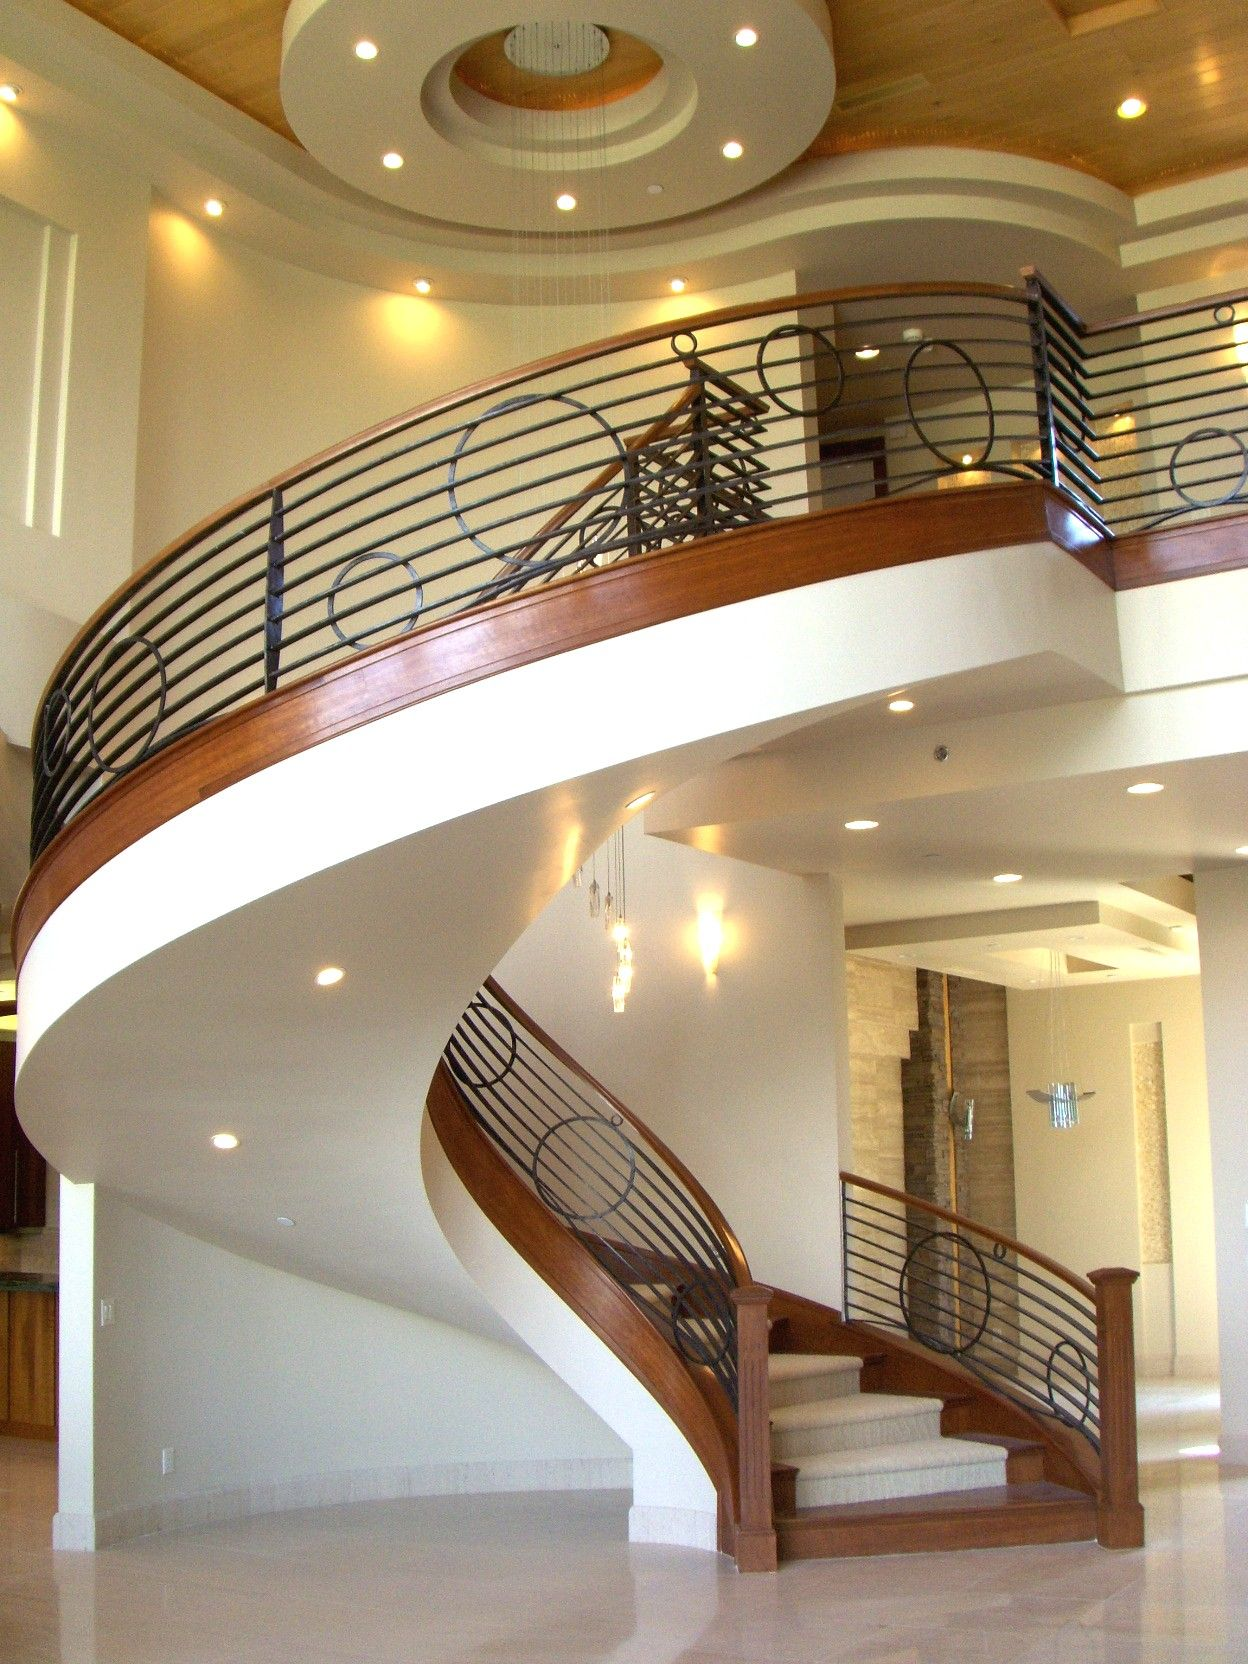 Merveilleux Luxury Staircases | Luxury Staircase Designs   Houses Plans   Designs